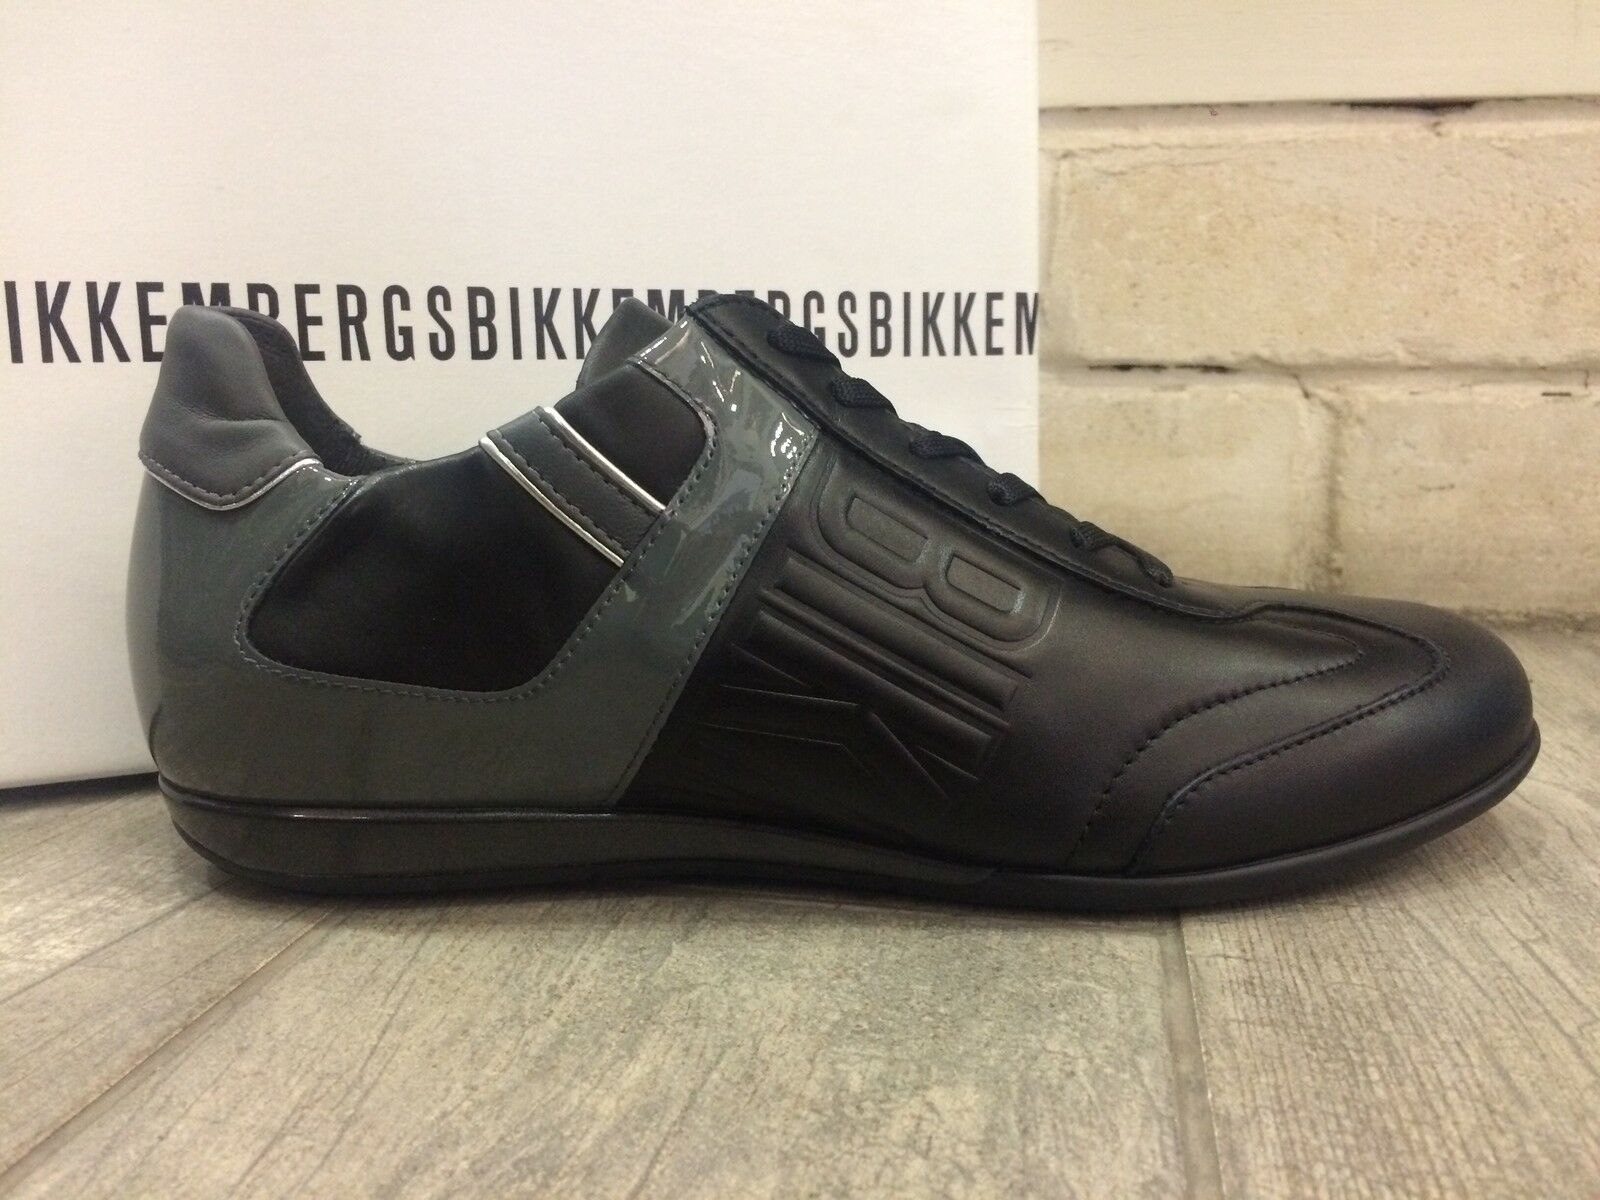 Dirk Bikkembergs Mens shoes Fashion Sneakers Trainers BKE106933 - New In Box